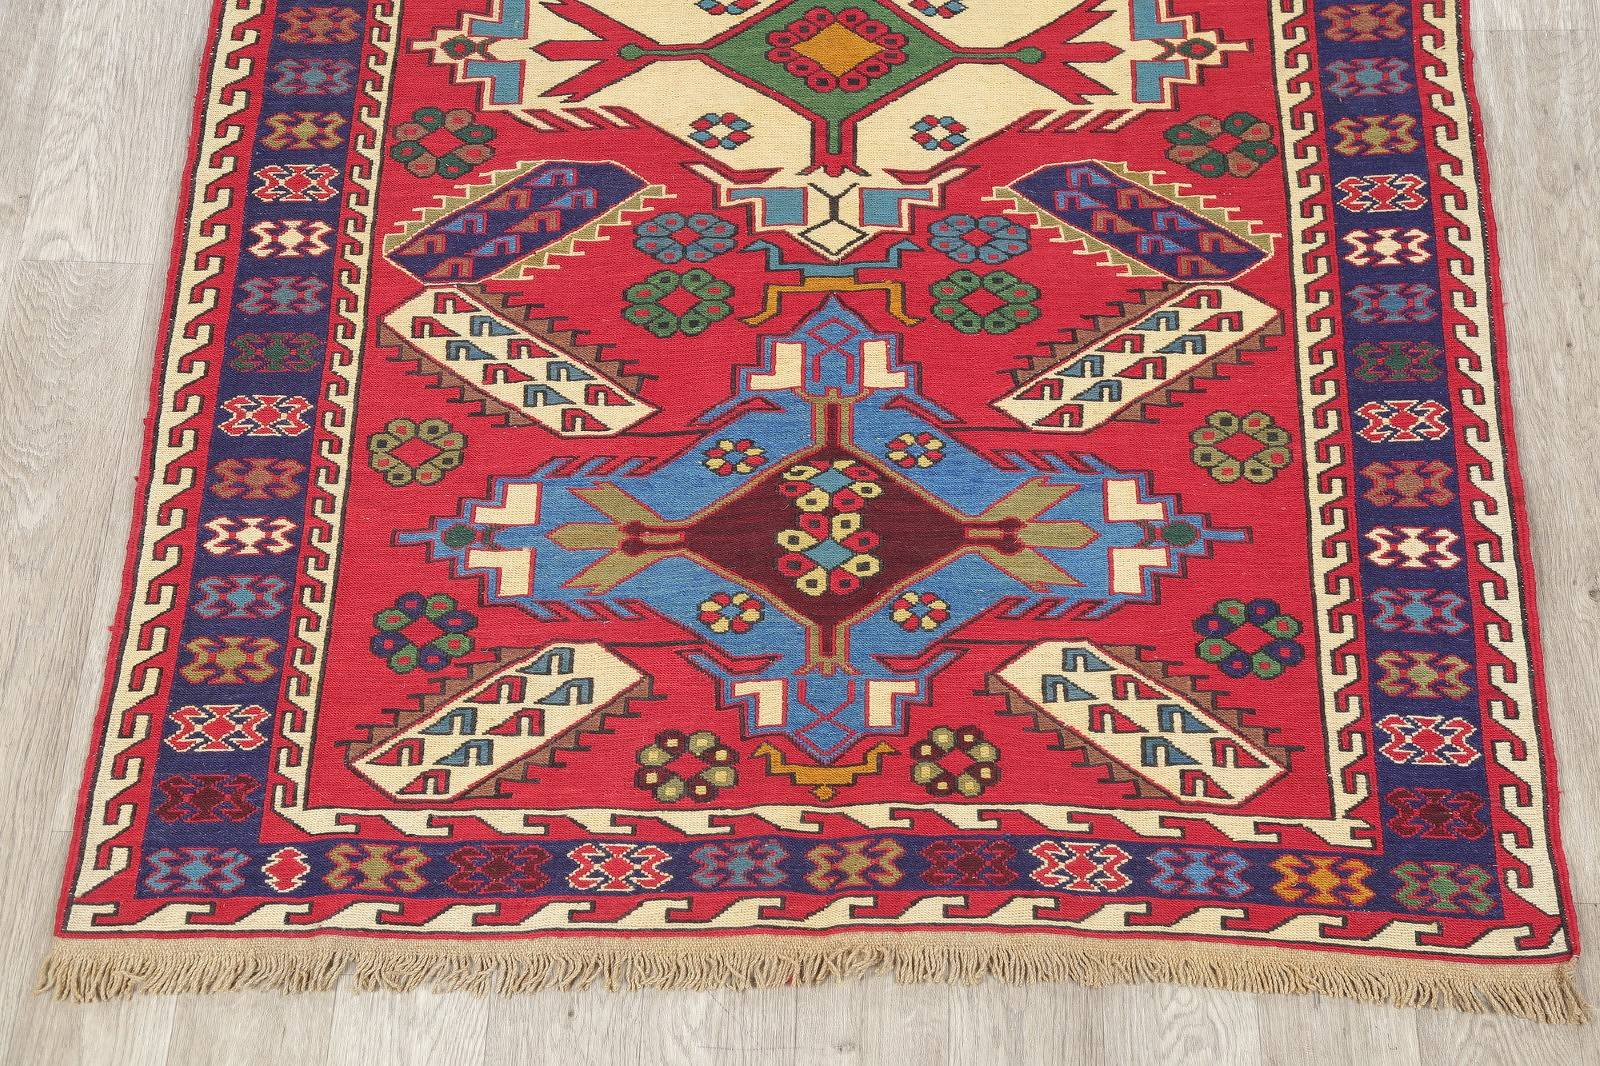 Hand-Woven Red Geometric Kilim Shiraz Persian Area Rug Wool 5x7